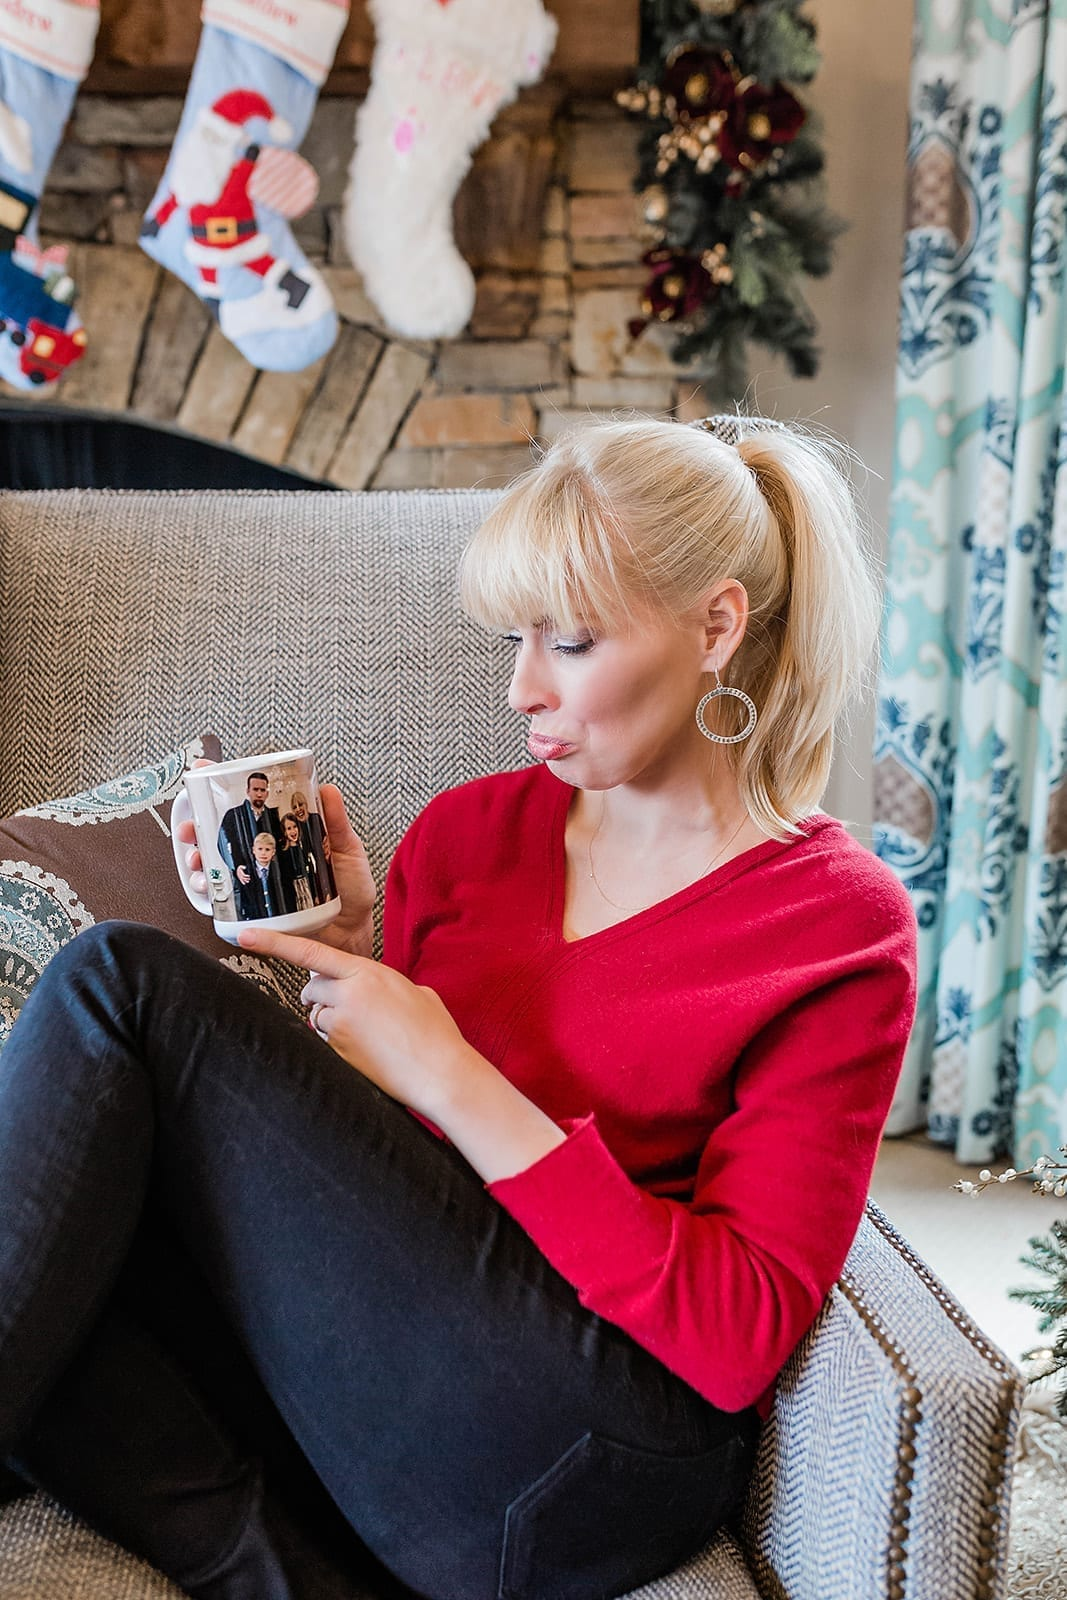 Sentimental Gift Ideas are the best! I love gifting Coffee Mugs so people can see photos every day when they wake up! It starts your day off with happy memories!